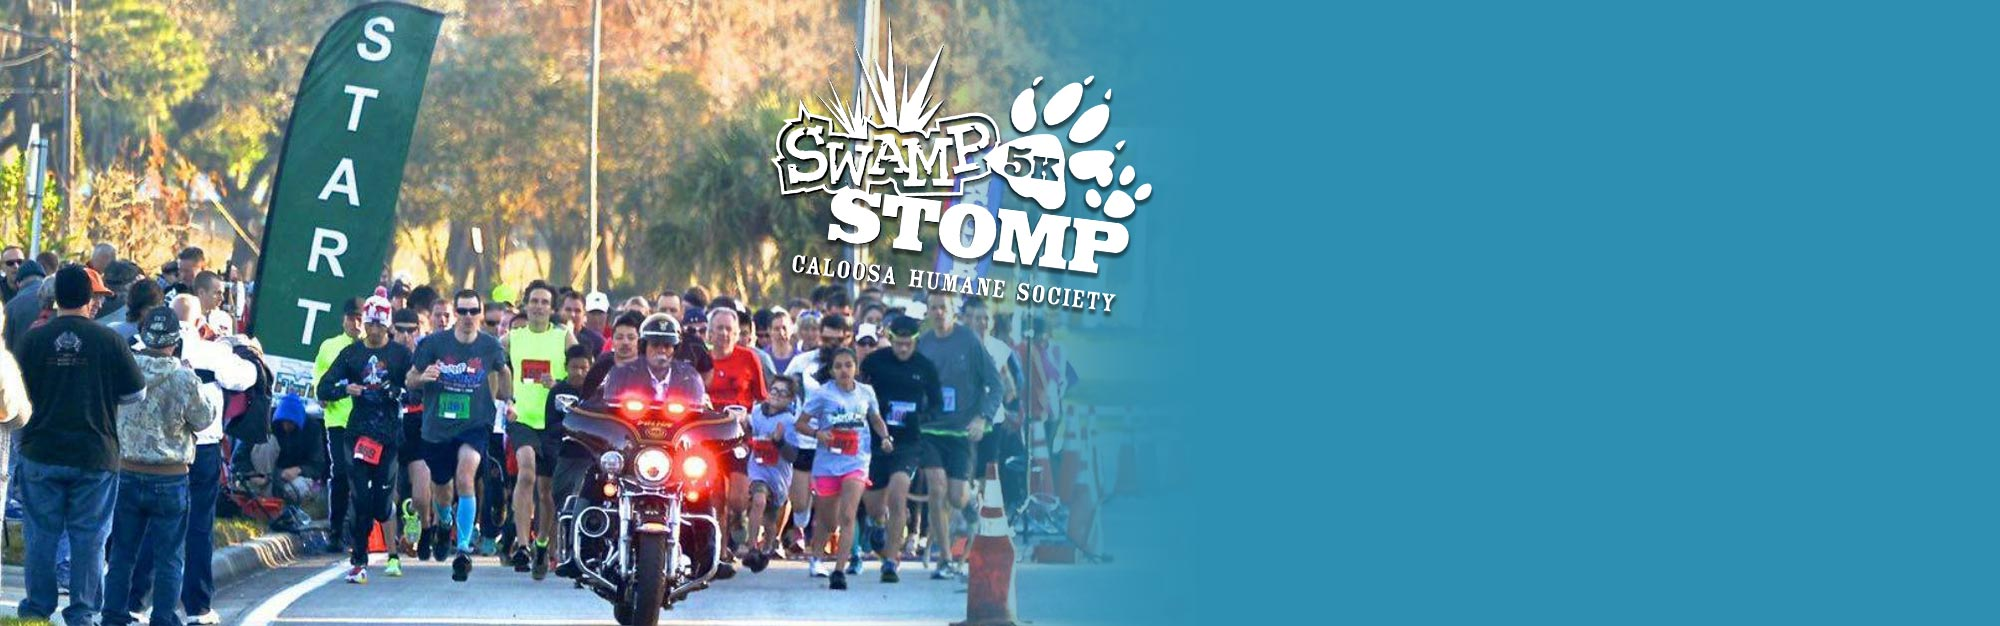 2019 Swamp Stomp Run/Walk | Caloosa Humane Society